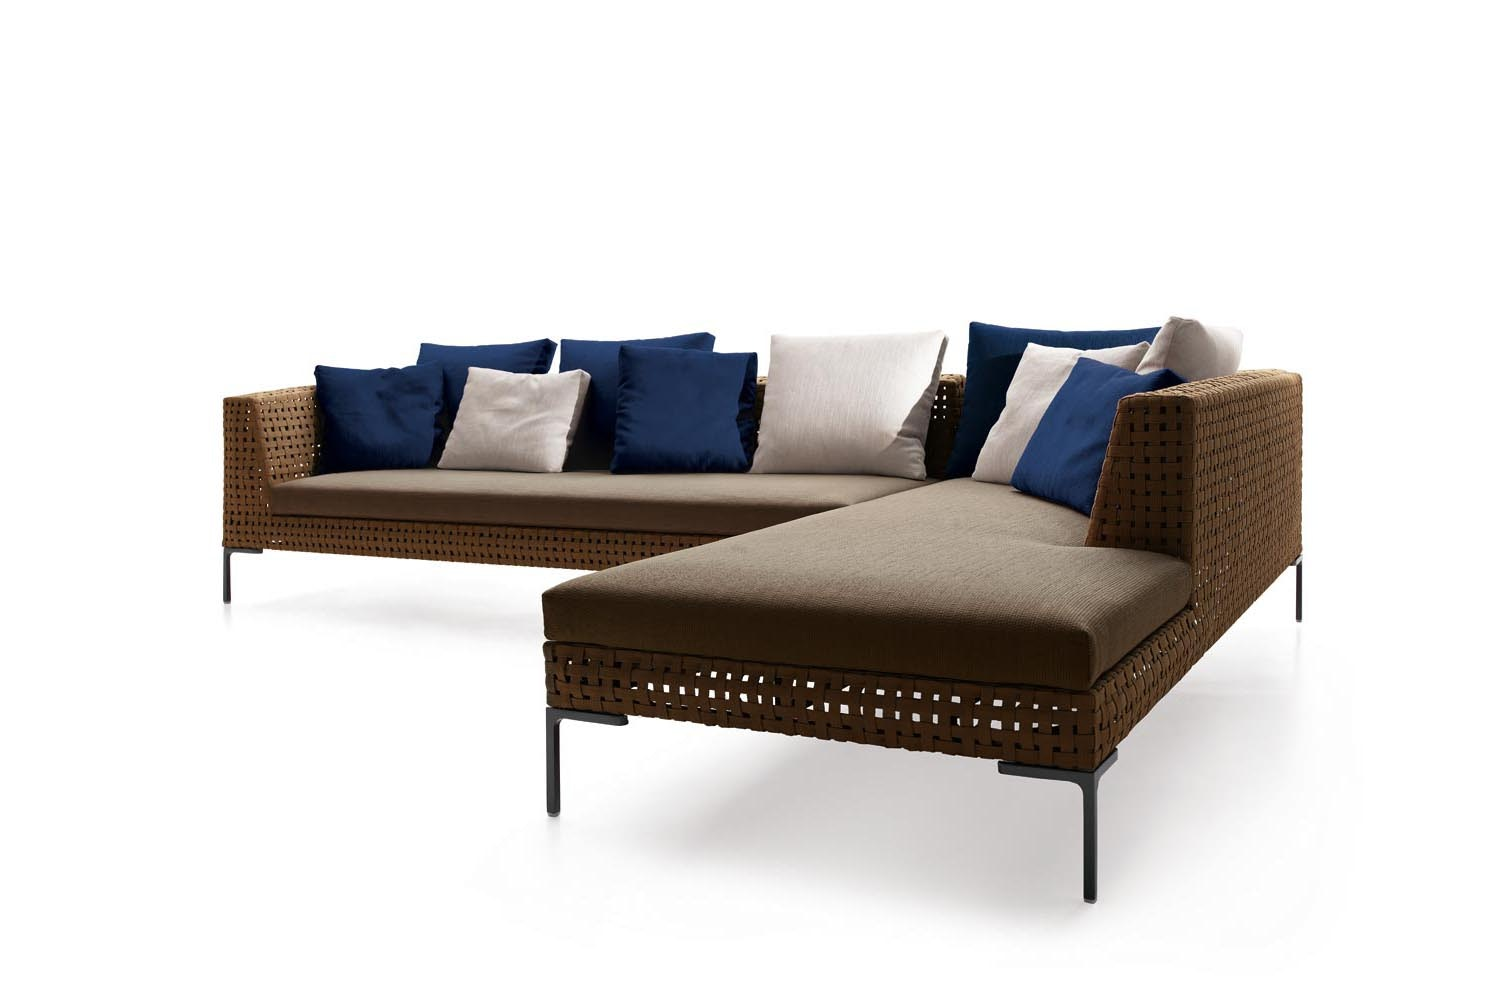 Charles Outdoor Sofa By Antonio Citterio For B B Italia Space